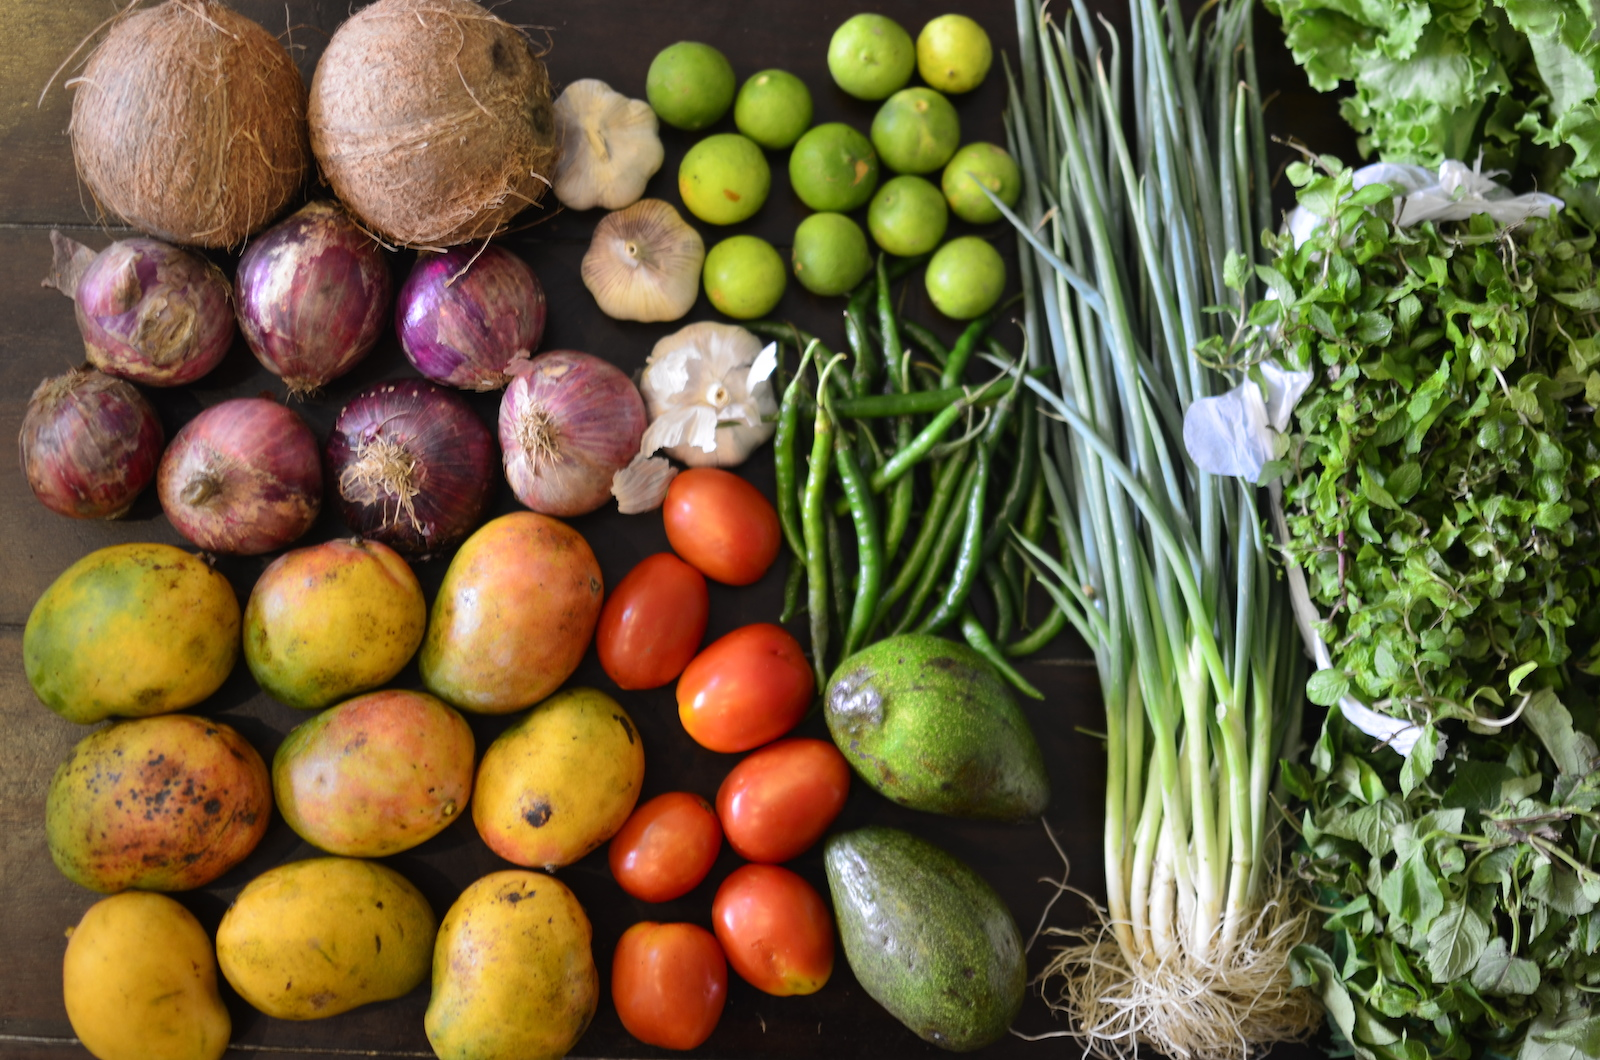 Fruits and vegetables from a Nigerian market